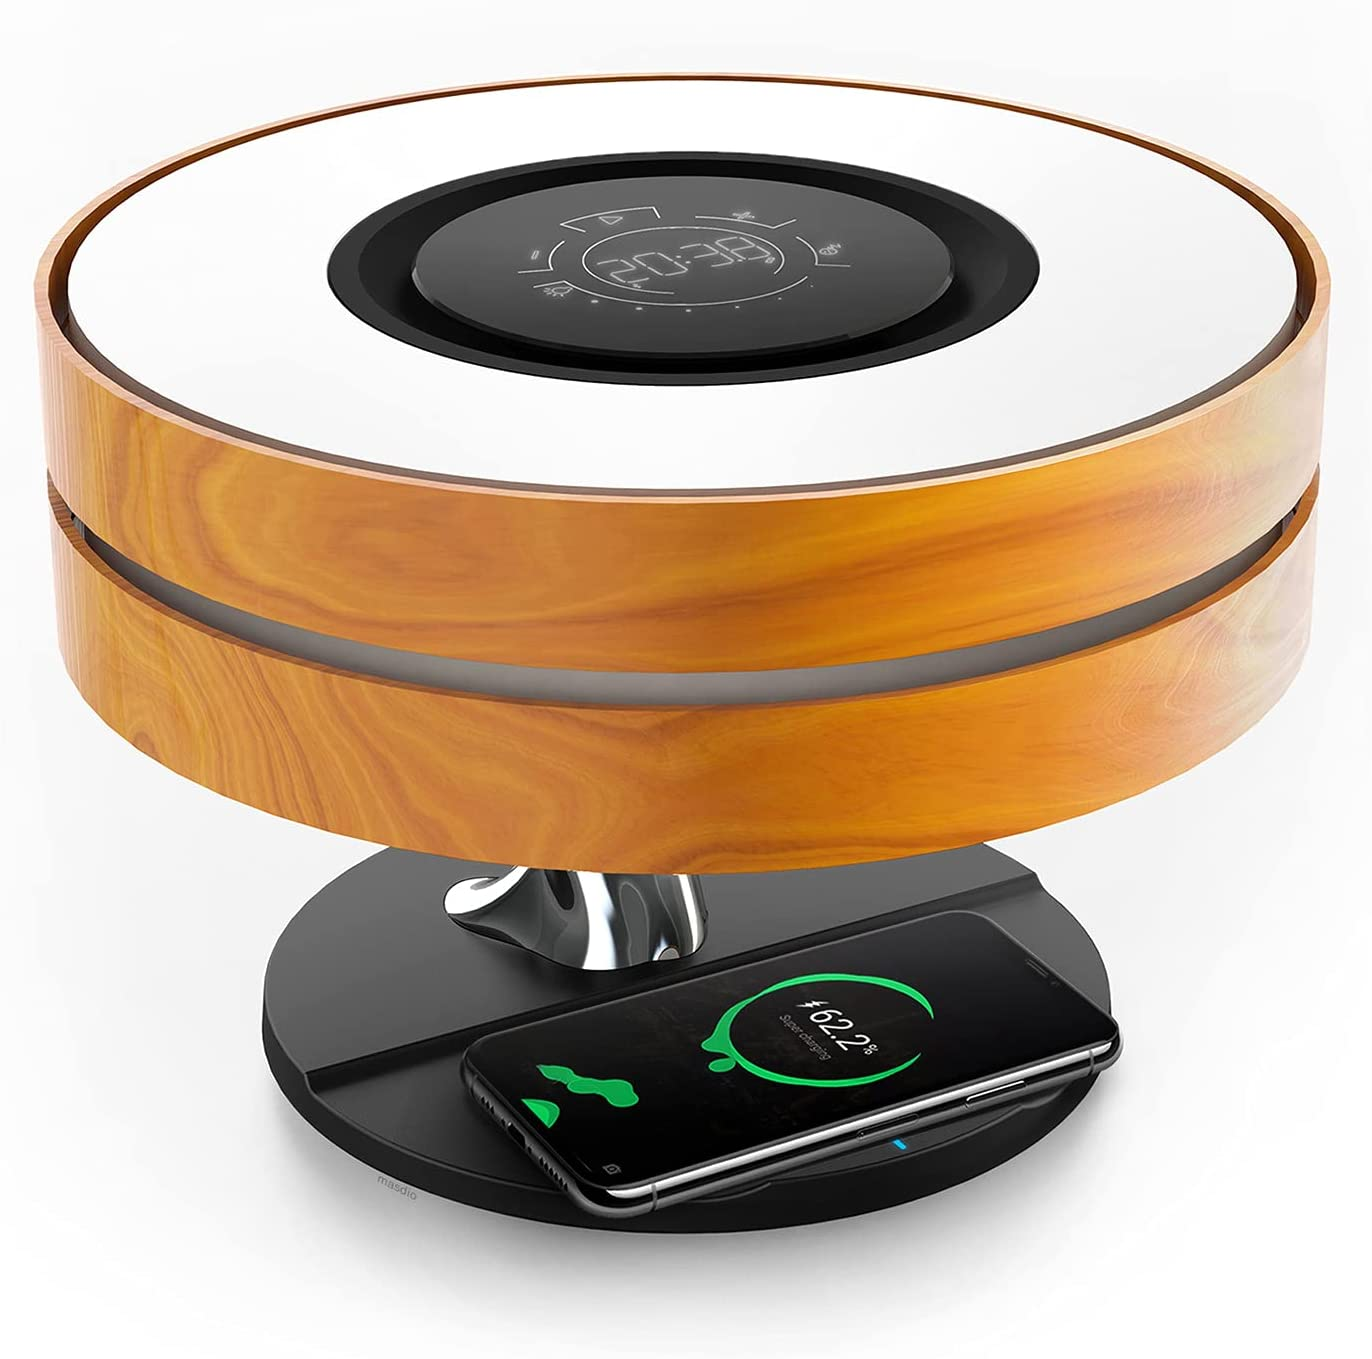 Horizon Bedside Lamp with 10W Wireless Charger and TWS Bluetooth Speaker, Night Lamp Ambient Lamp with Digital Clock, Stepless Dimming and Sleep Mode for Nightstand